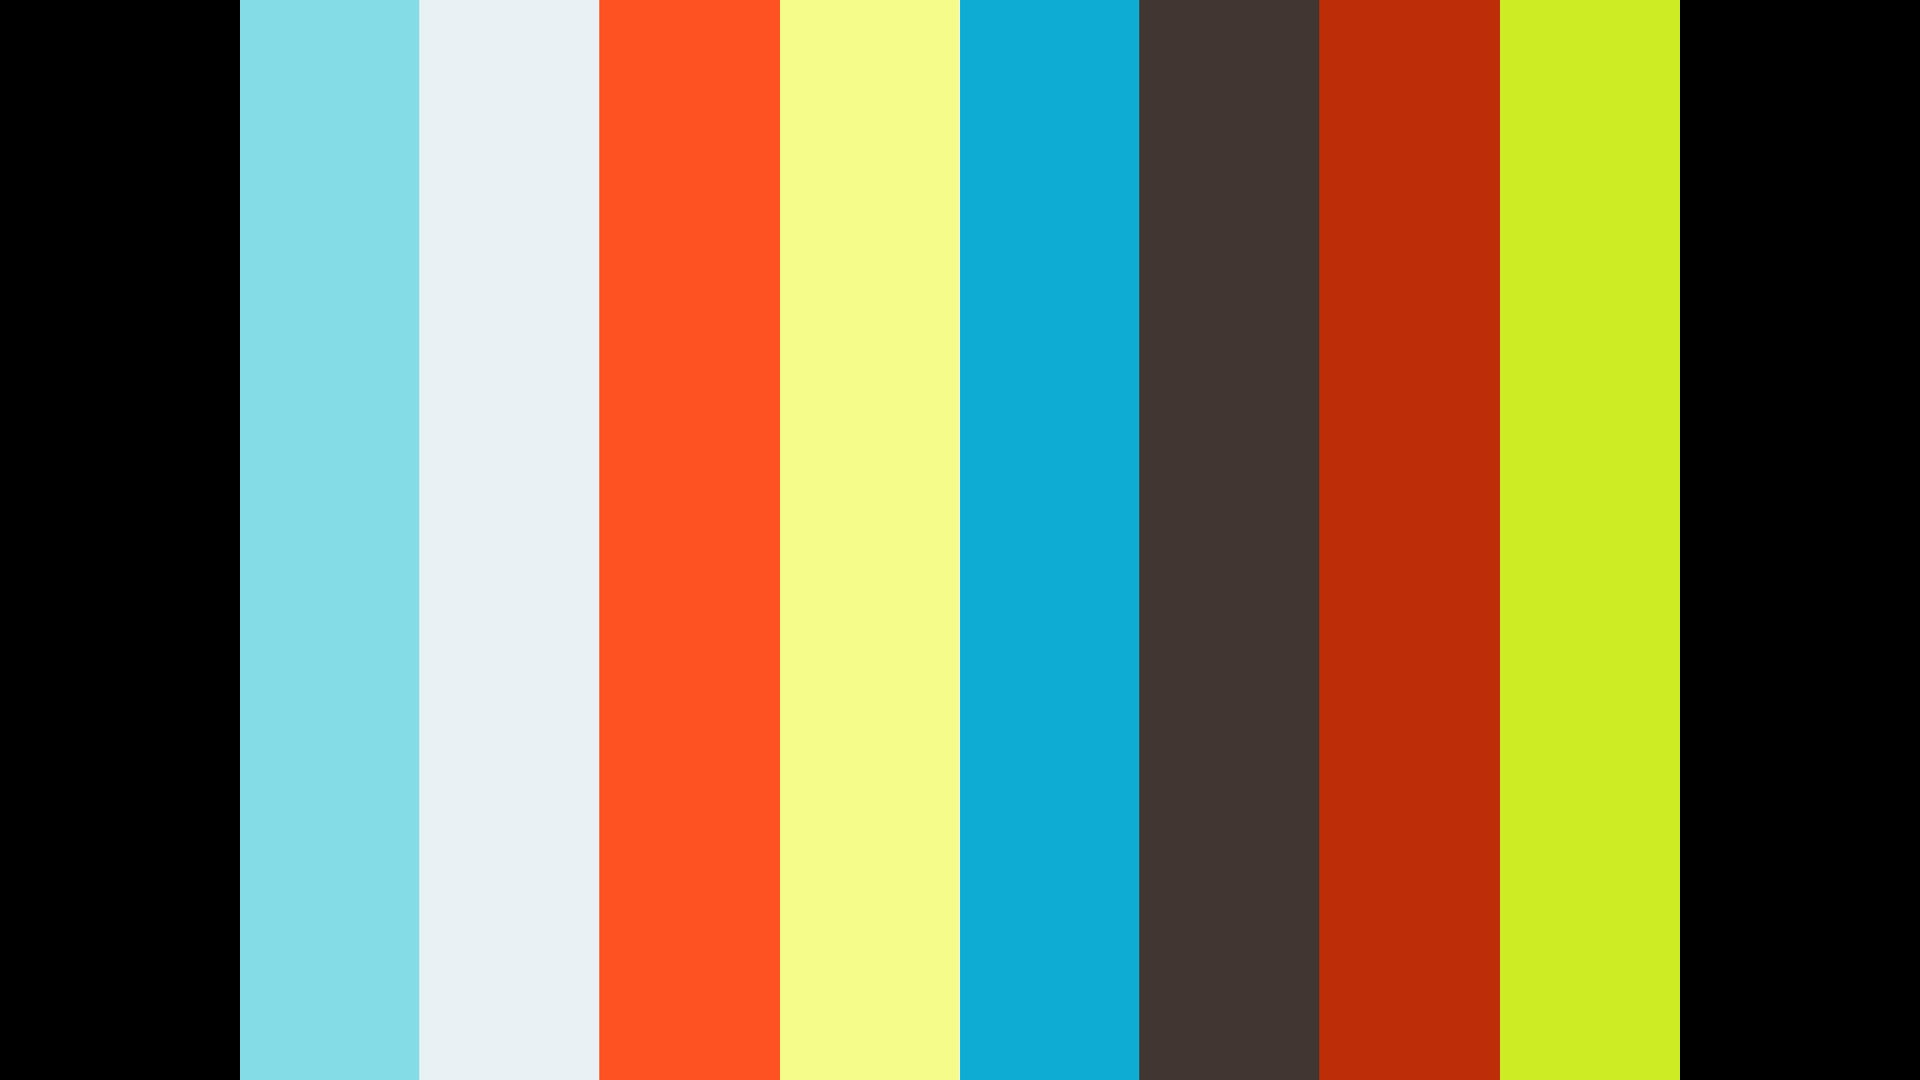 Loma Linda Strong at the Loma Linda Fire Station #LomaLindaStrong @LomaLindaStrong2020